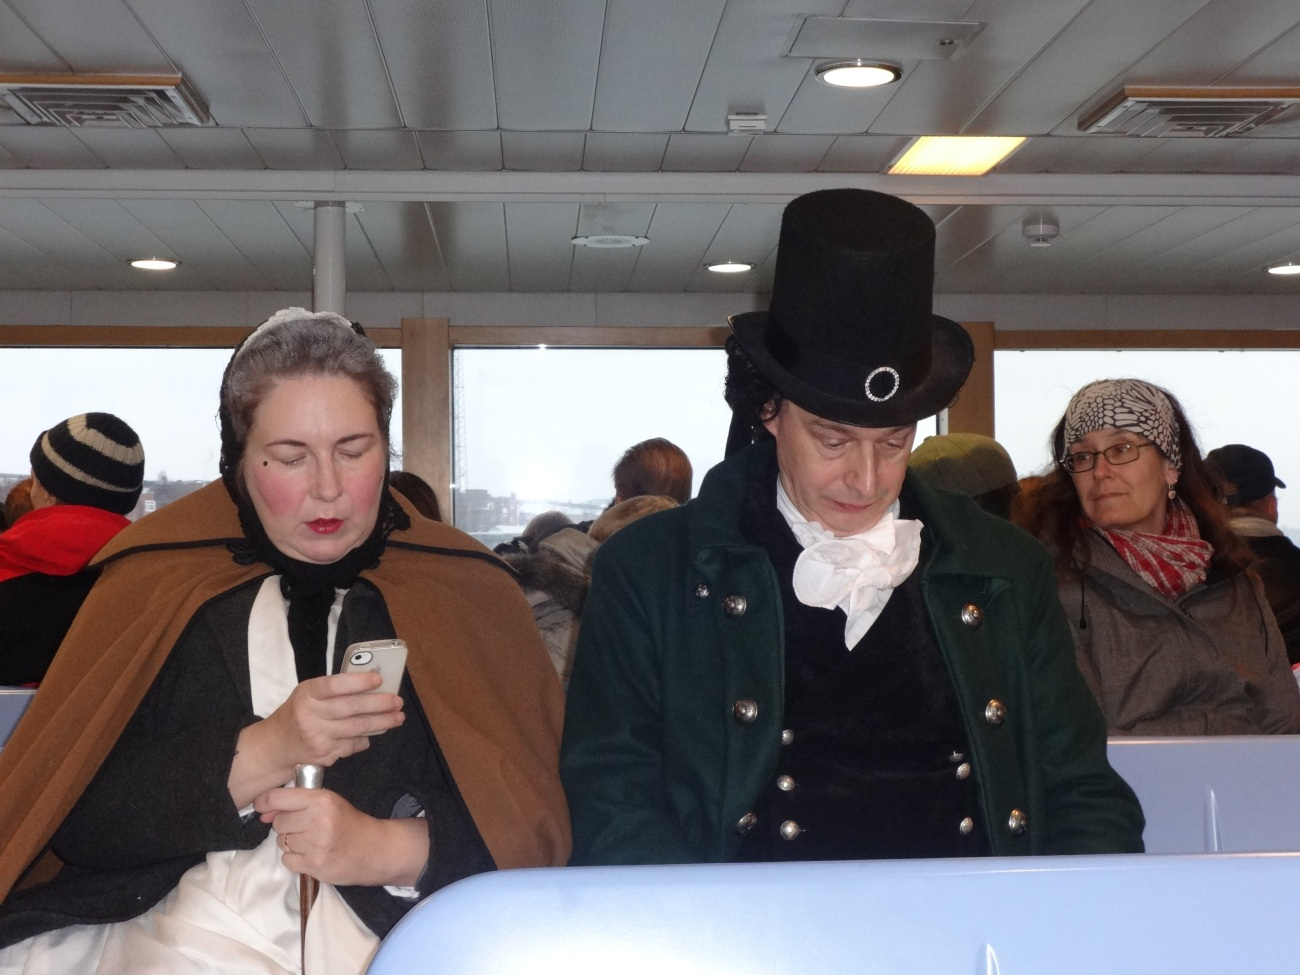 Spotted a cute couple in traditional attire in Ferry